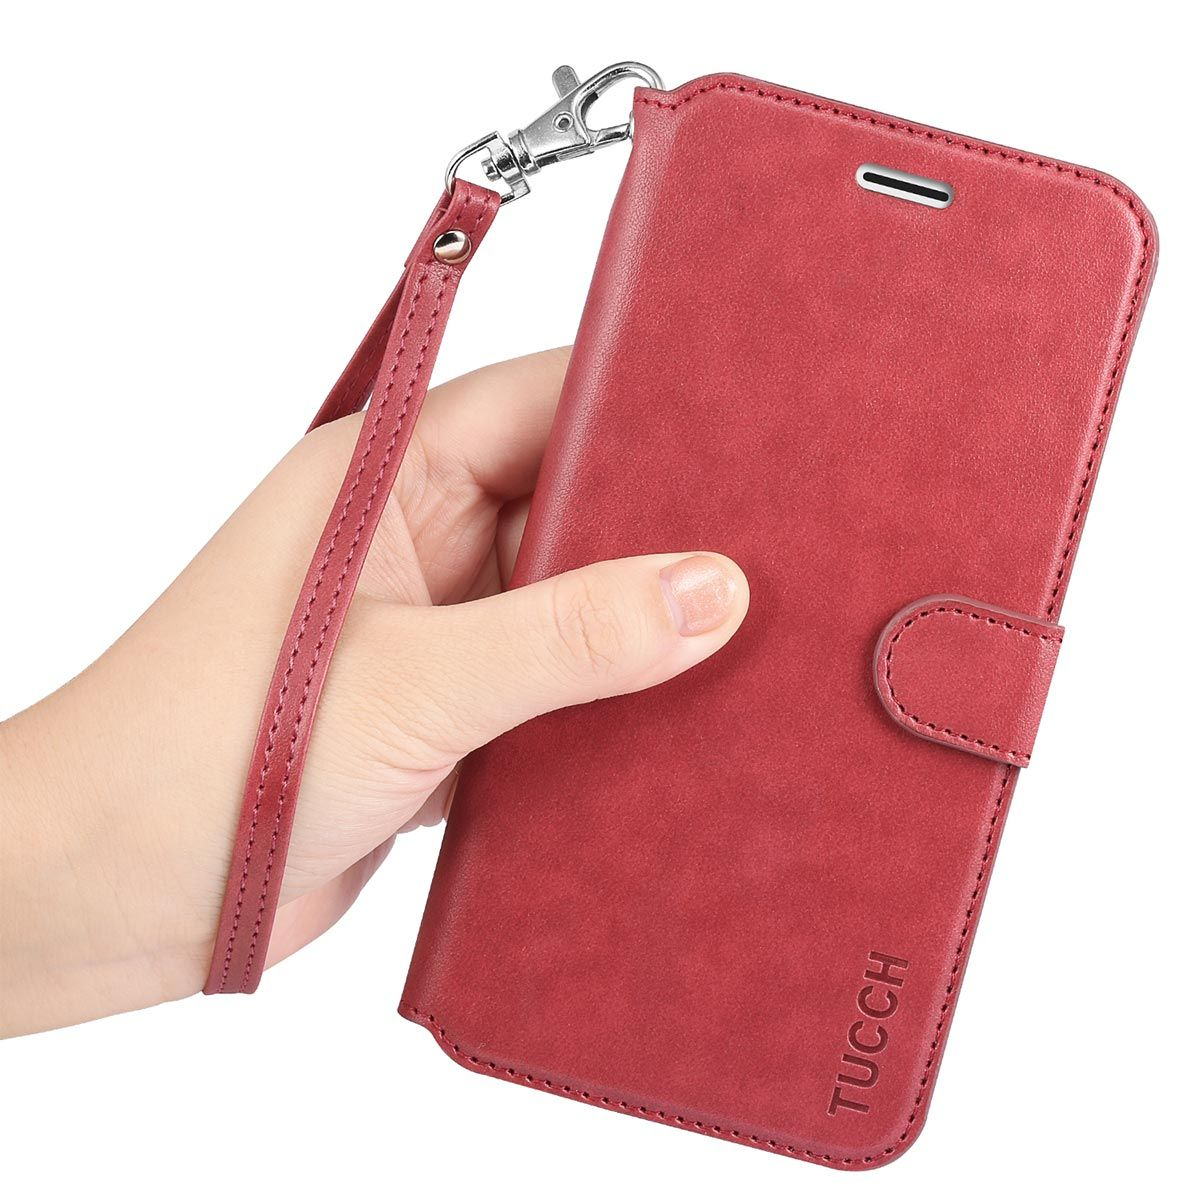 new styles 40e61 6accb TUCCH iPhone 6S / 6 Plus PU Leather Book Case, Magnetic Closure, Wrist Strap